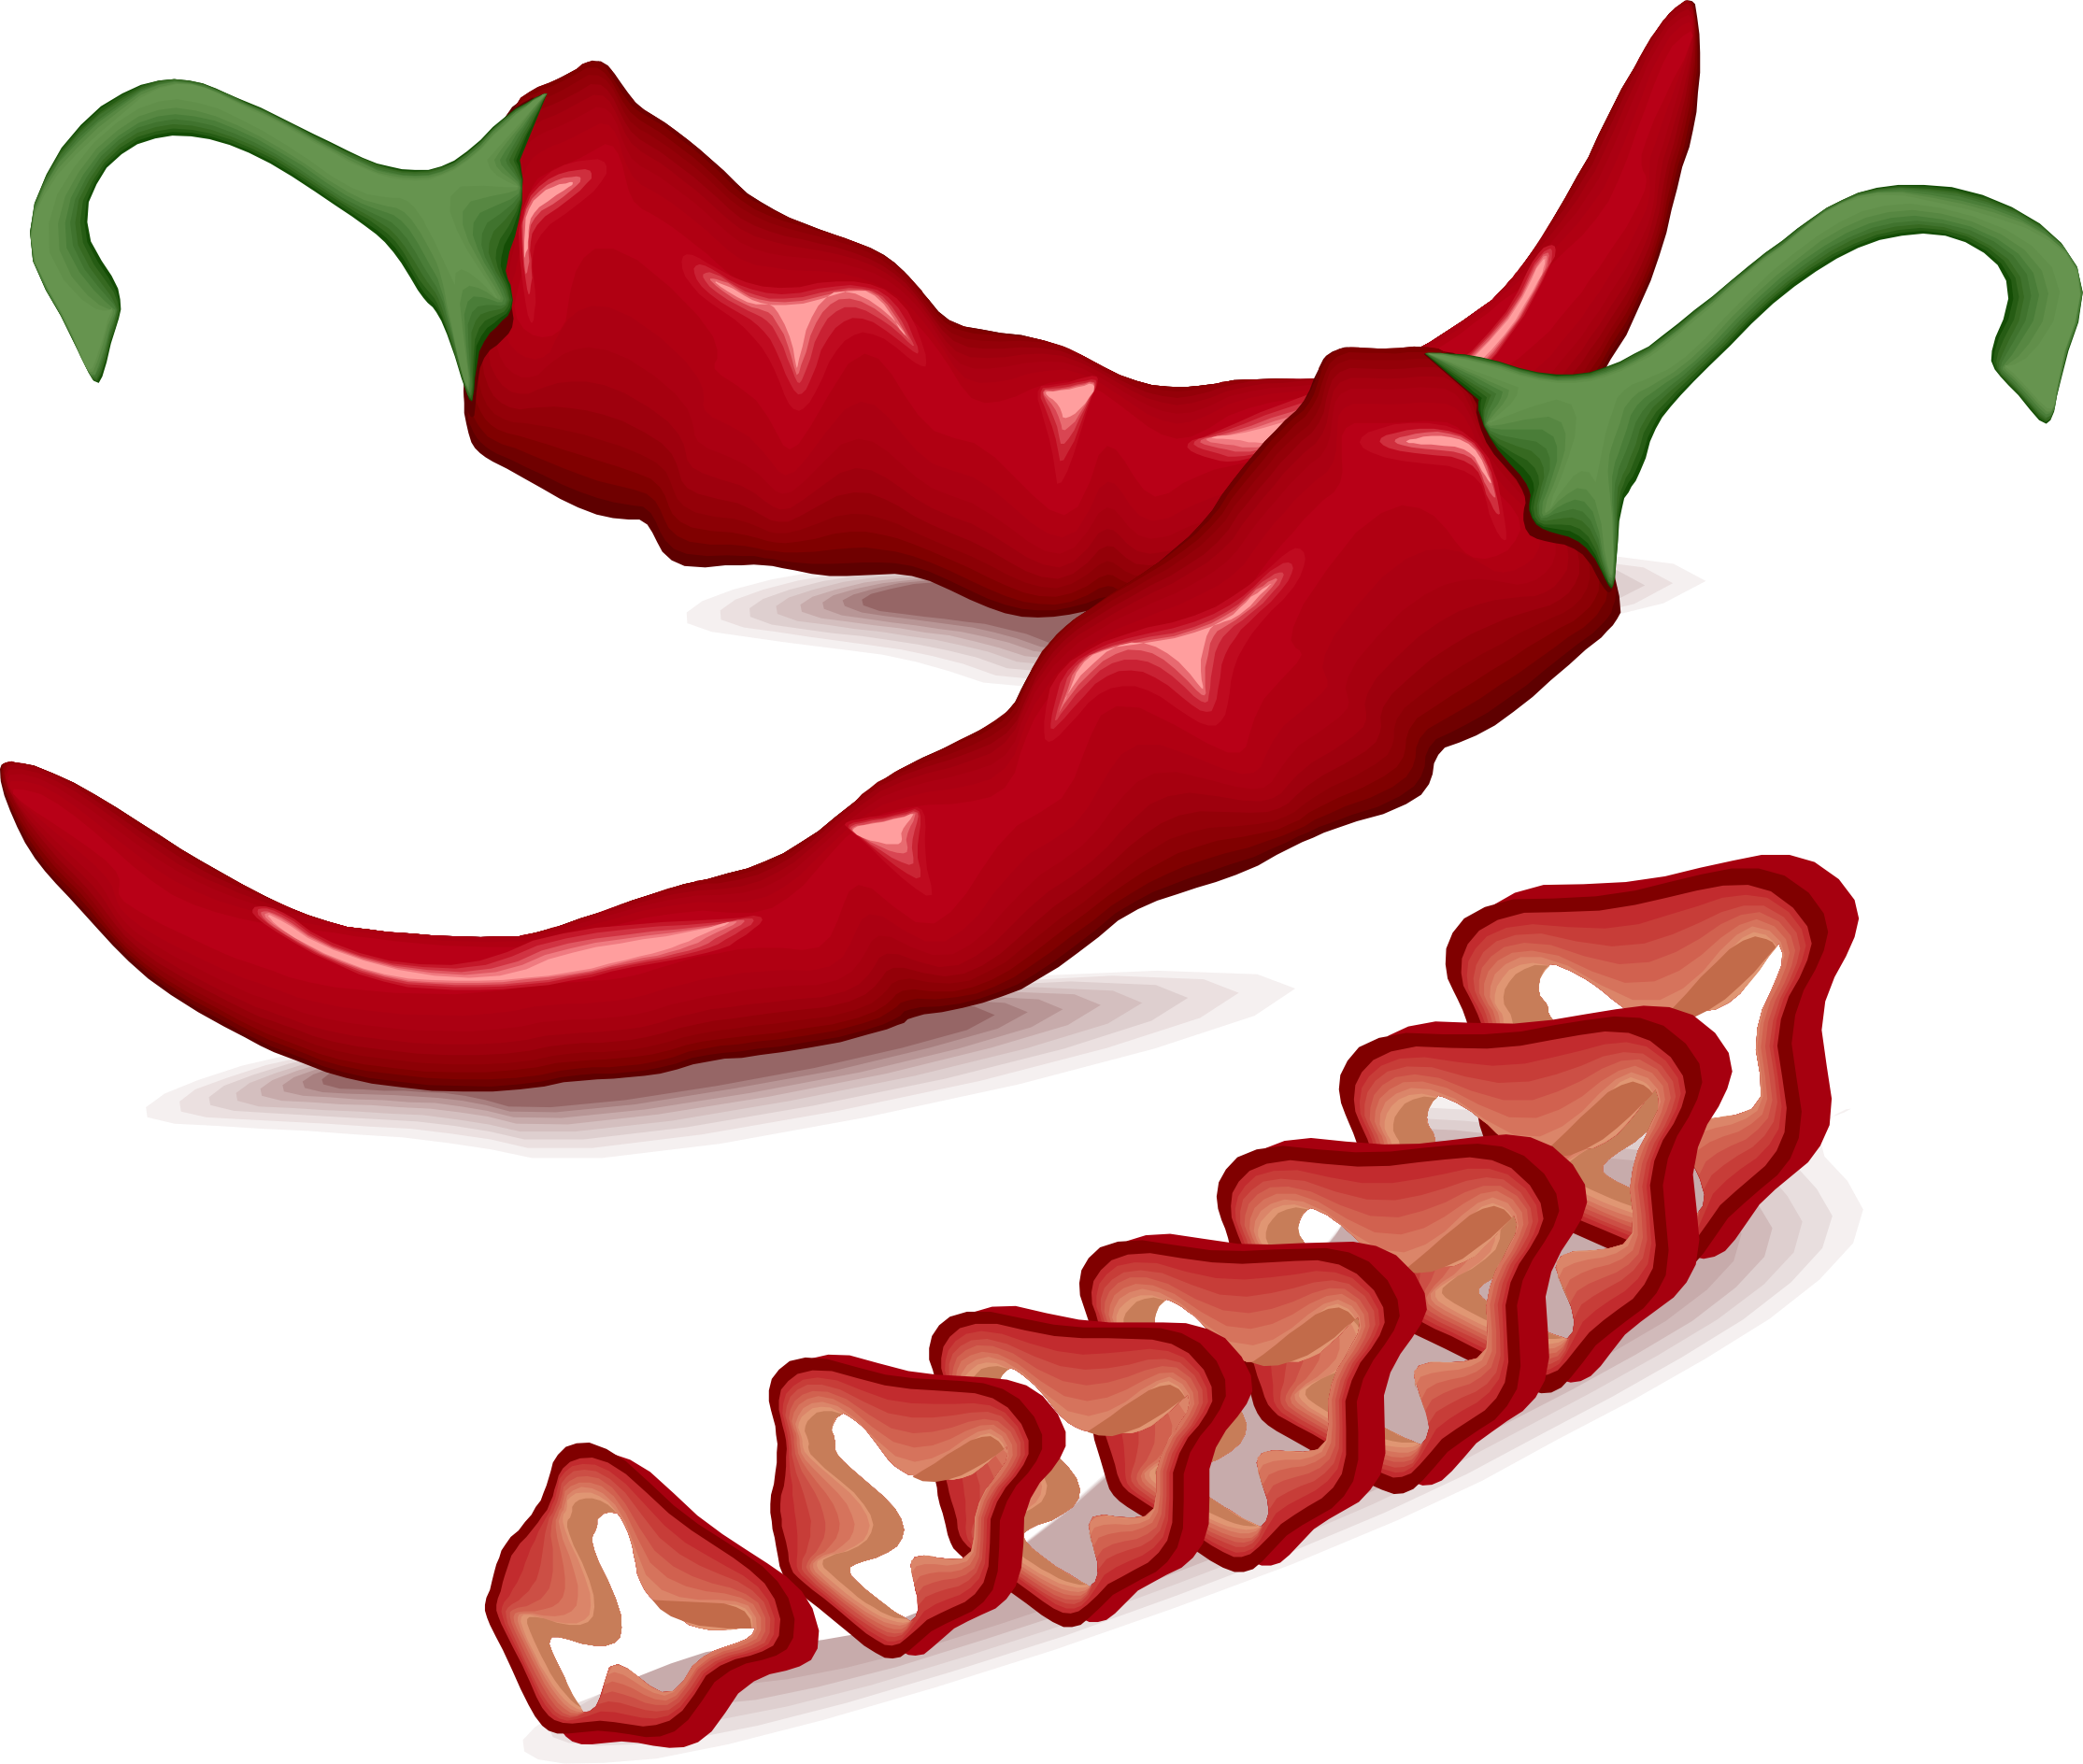 Big image png. Peppers clipart cayenne pepper